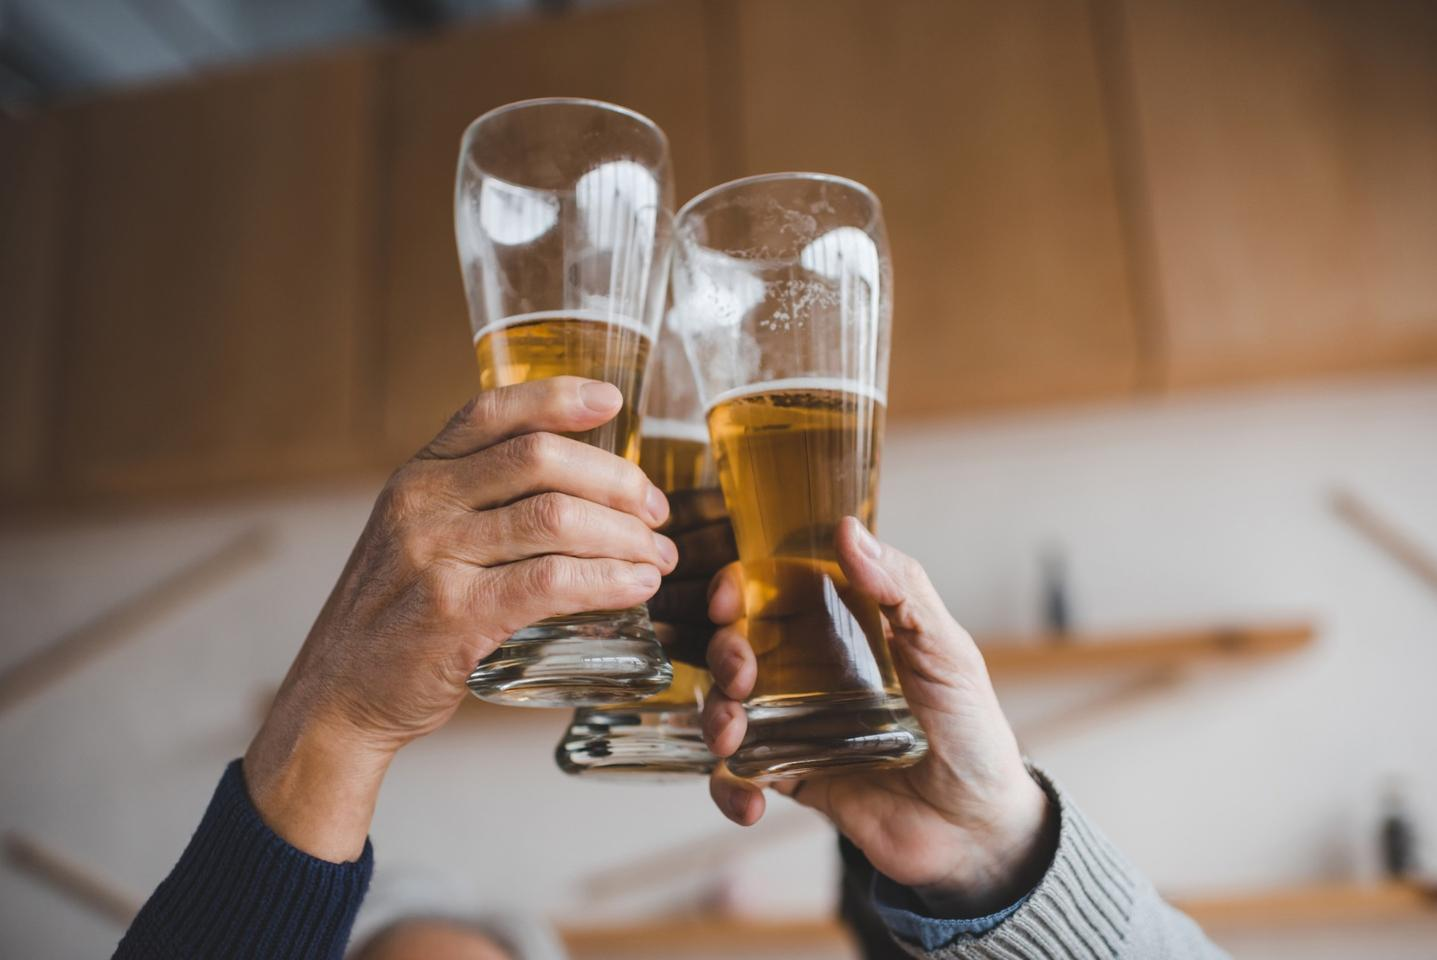 A new process uses electromagnetic radiation to selectively heat beer and other foods and drink